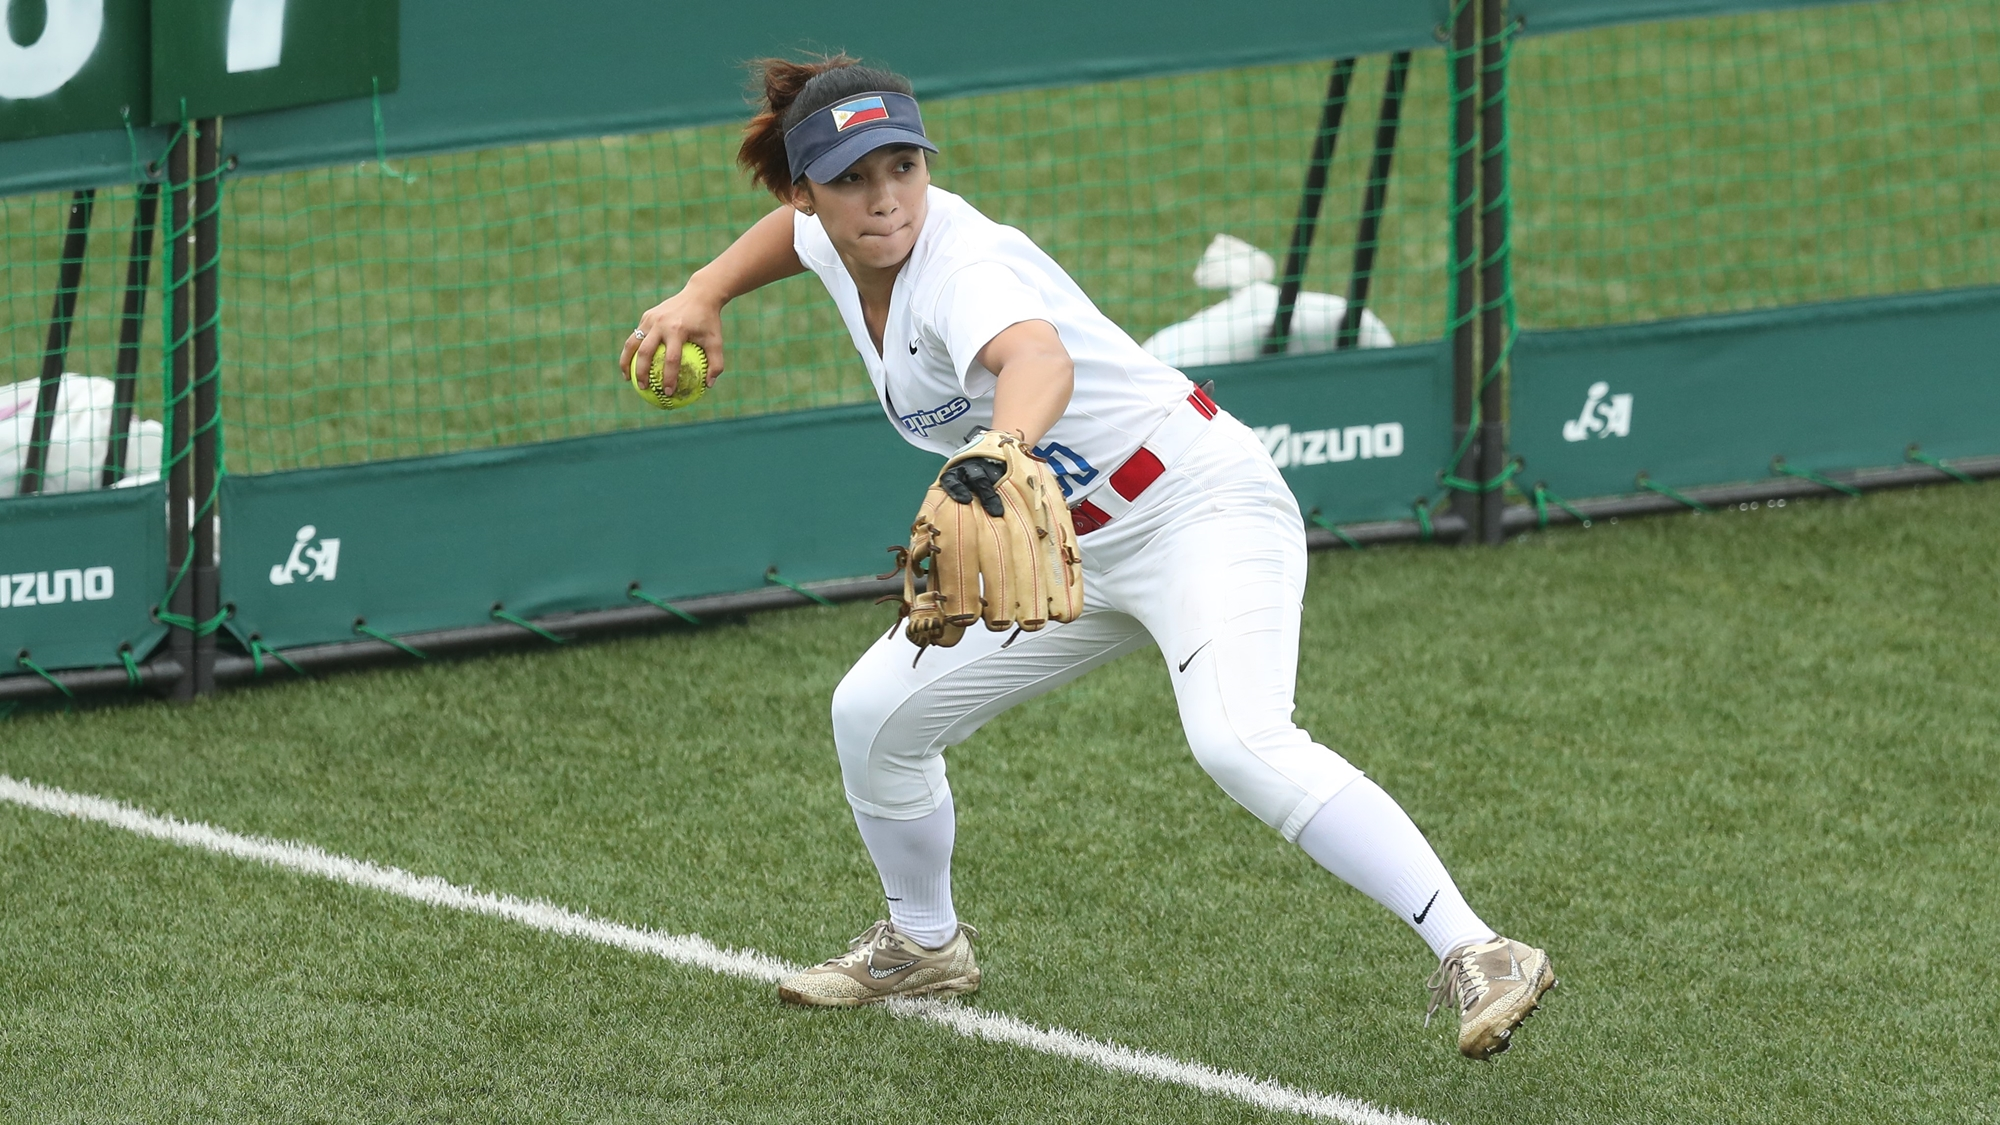 Arianne Vallestero of the Philippines in the outfield